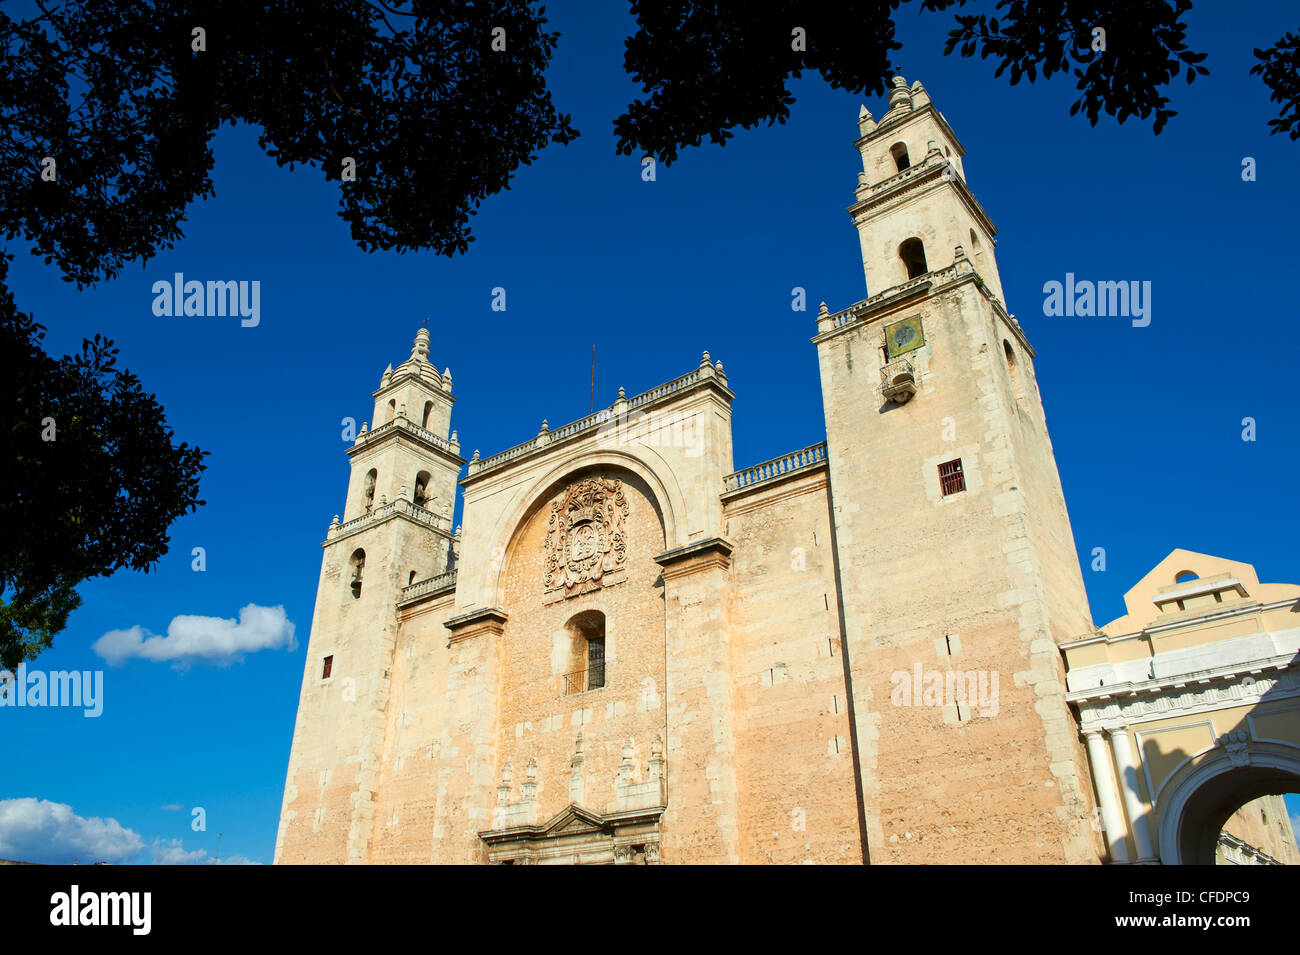 The Cathedral, Independence Square, Merida, Yucatan state, Mexico, - Stock Image